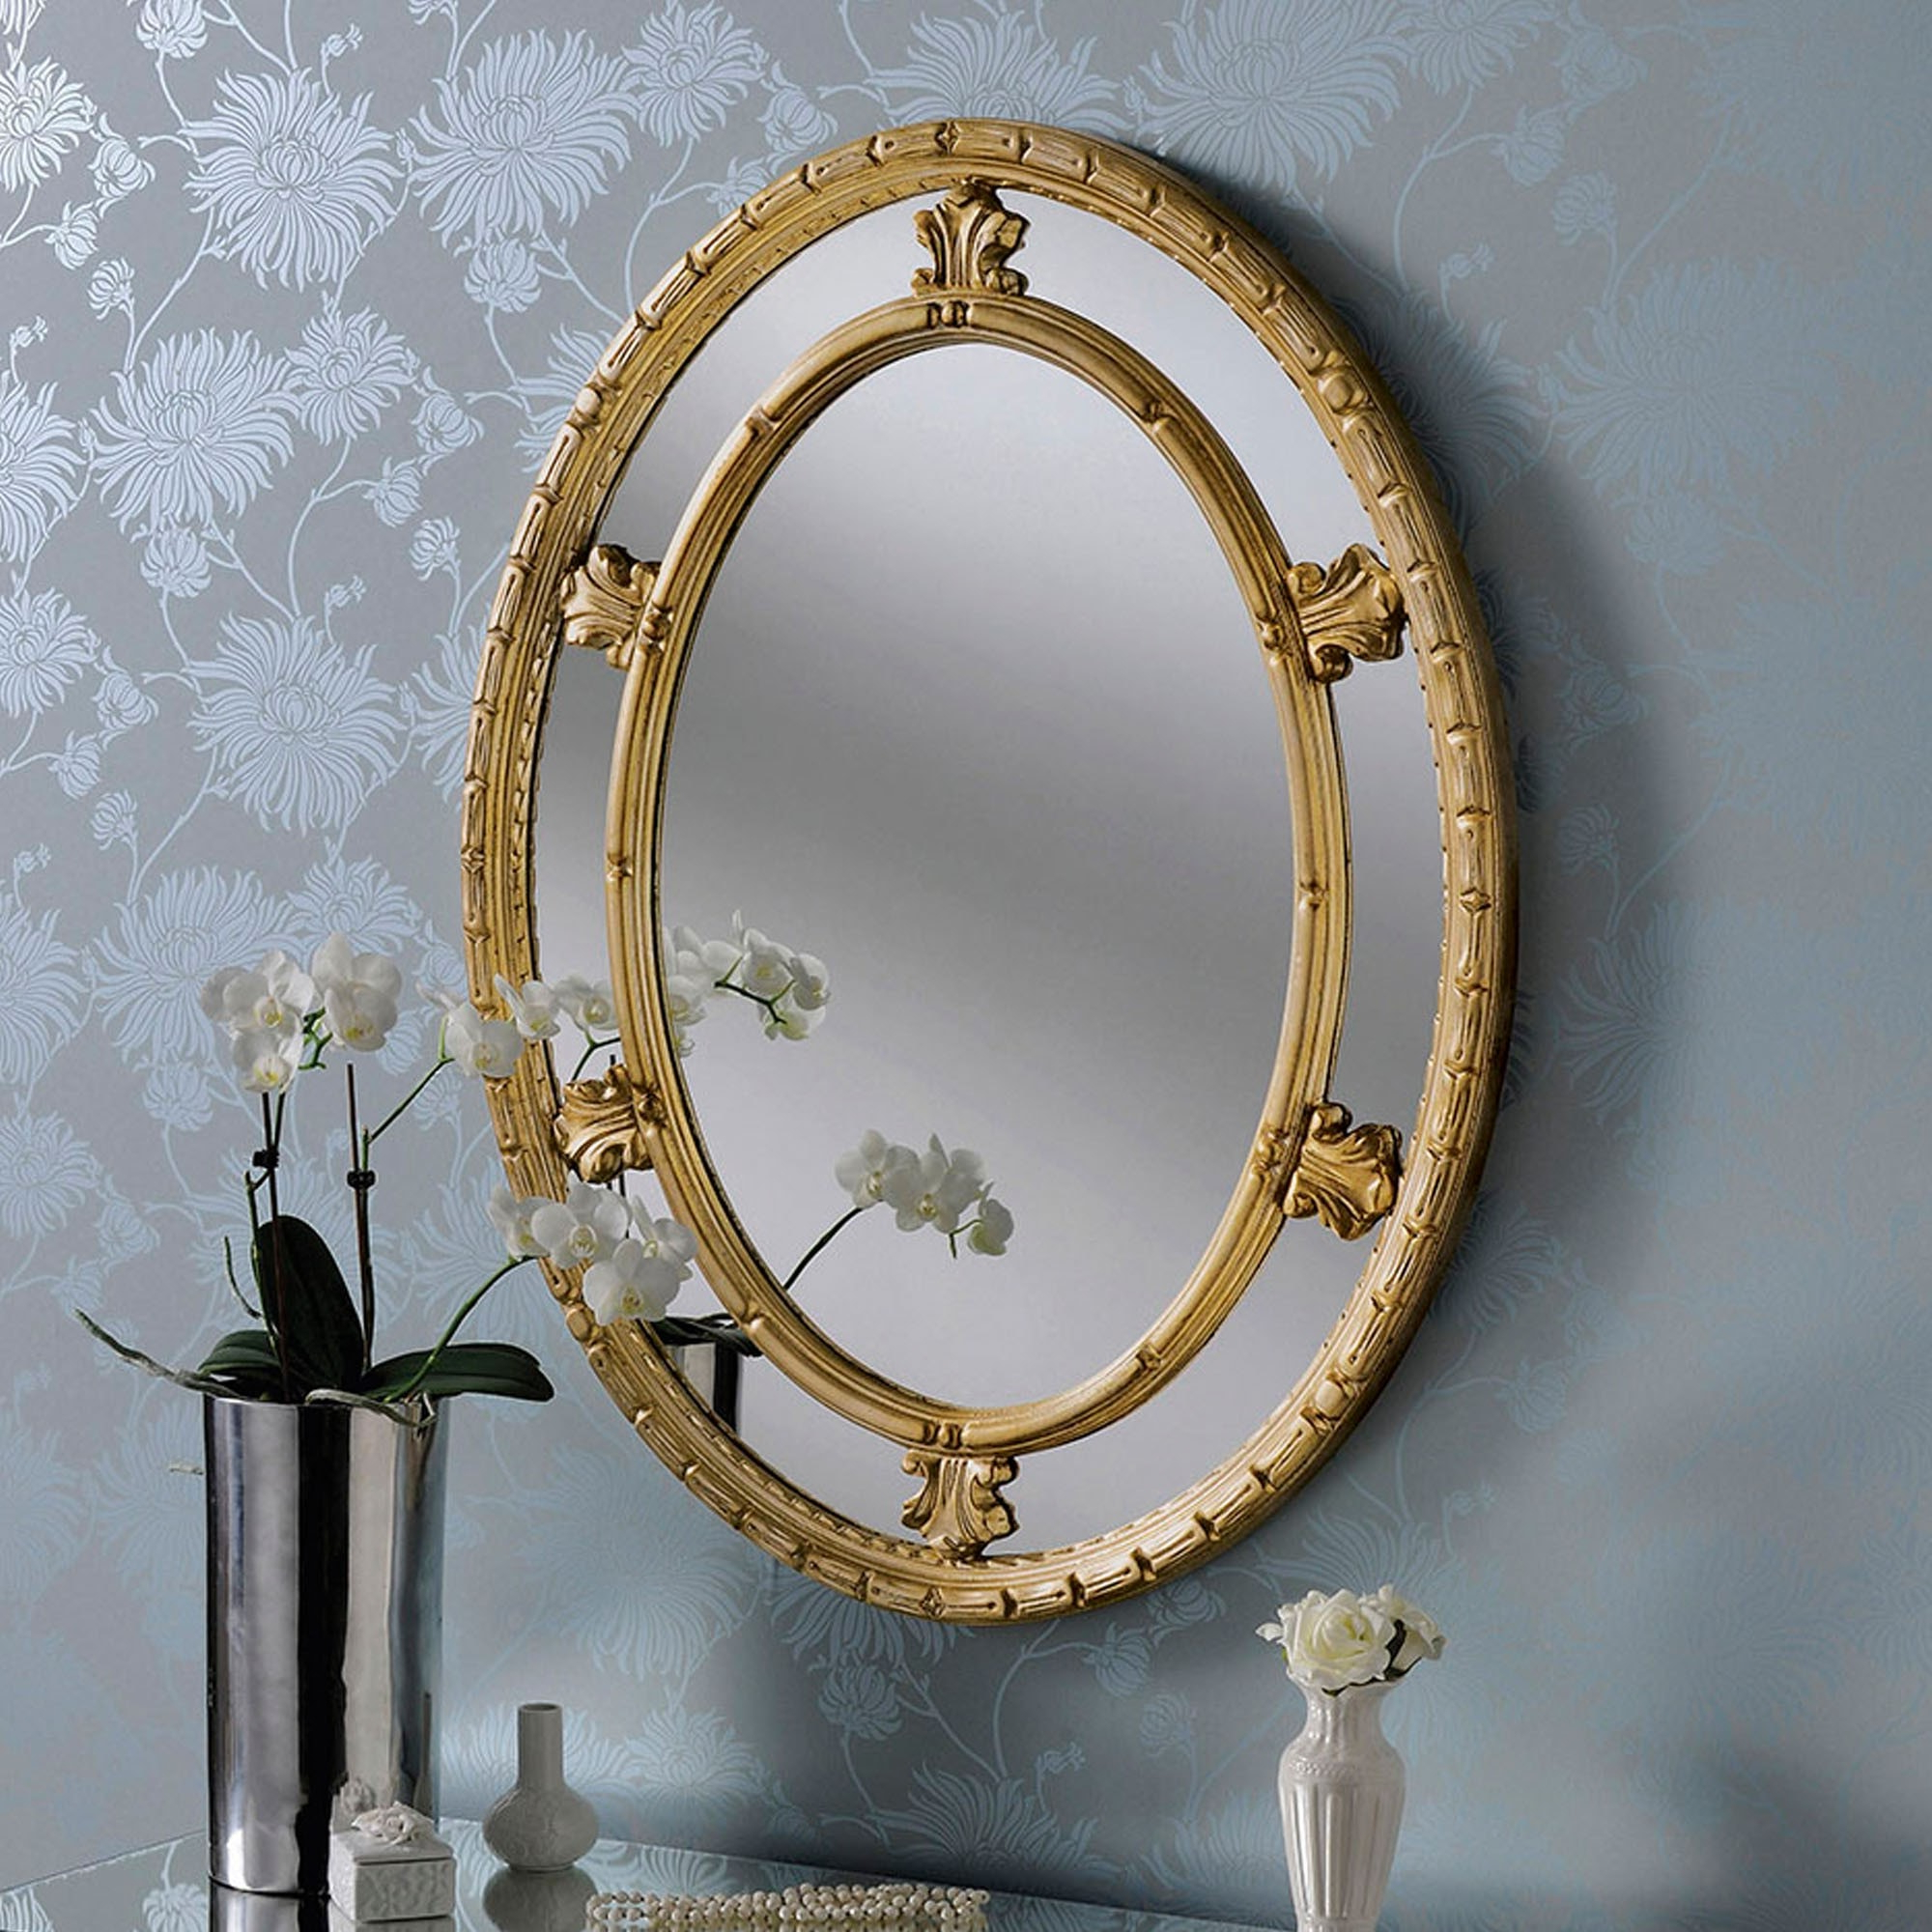 2020 Circular Wall Mirrors Inside Antique French Style Gold Circular Wall Mirror (View 12 of 20)